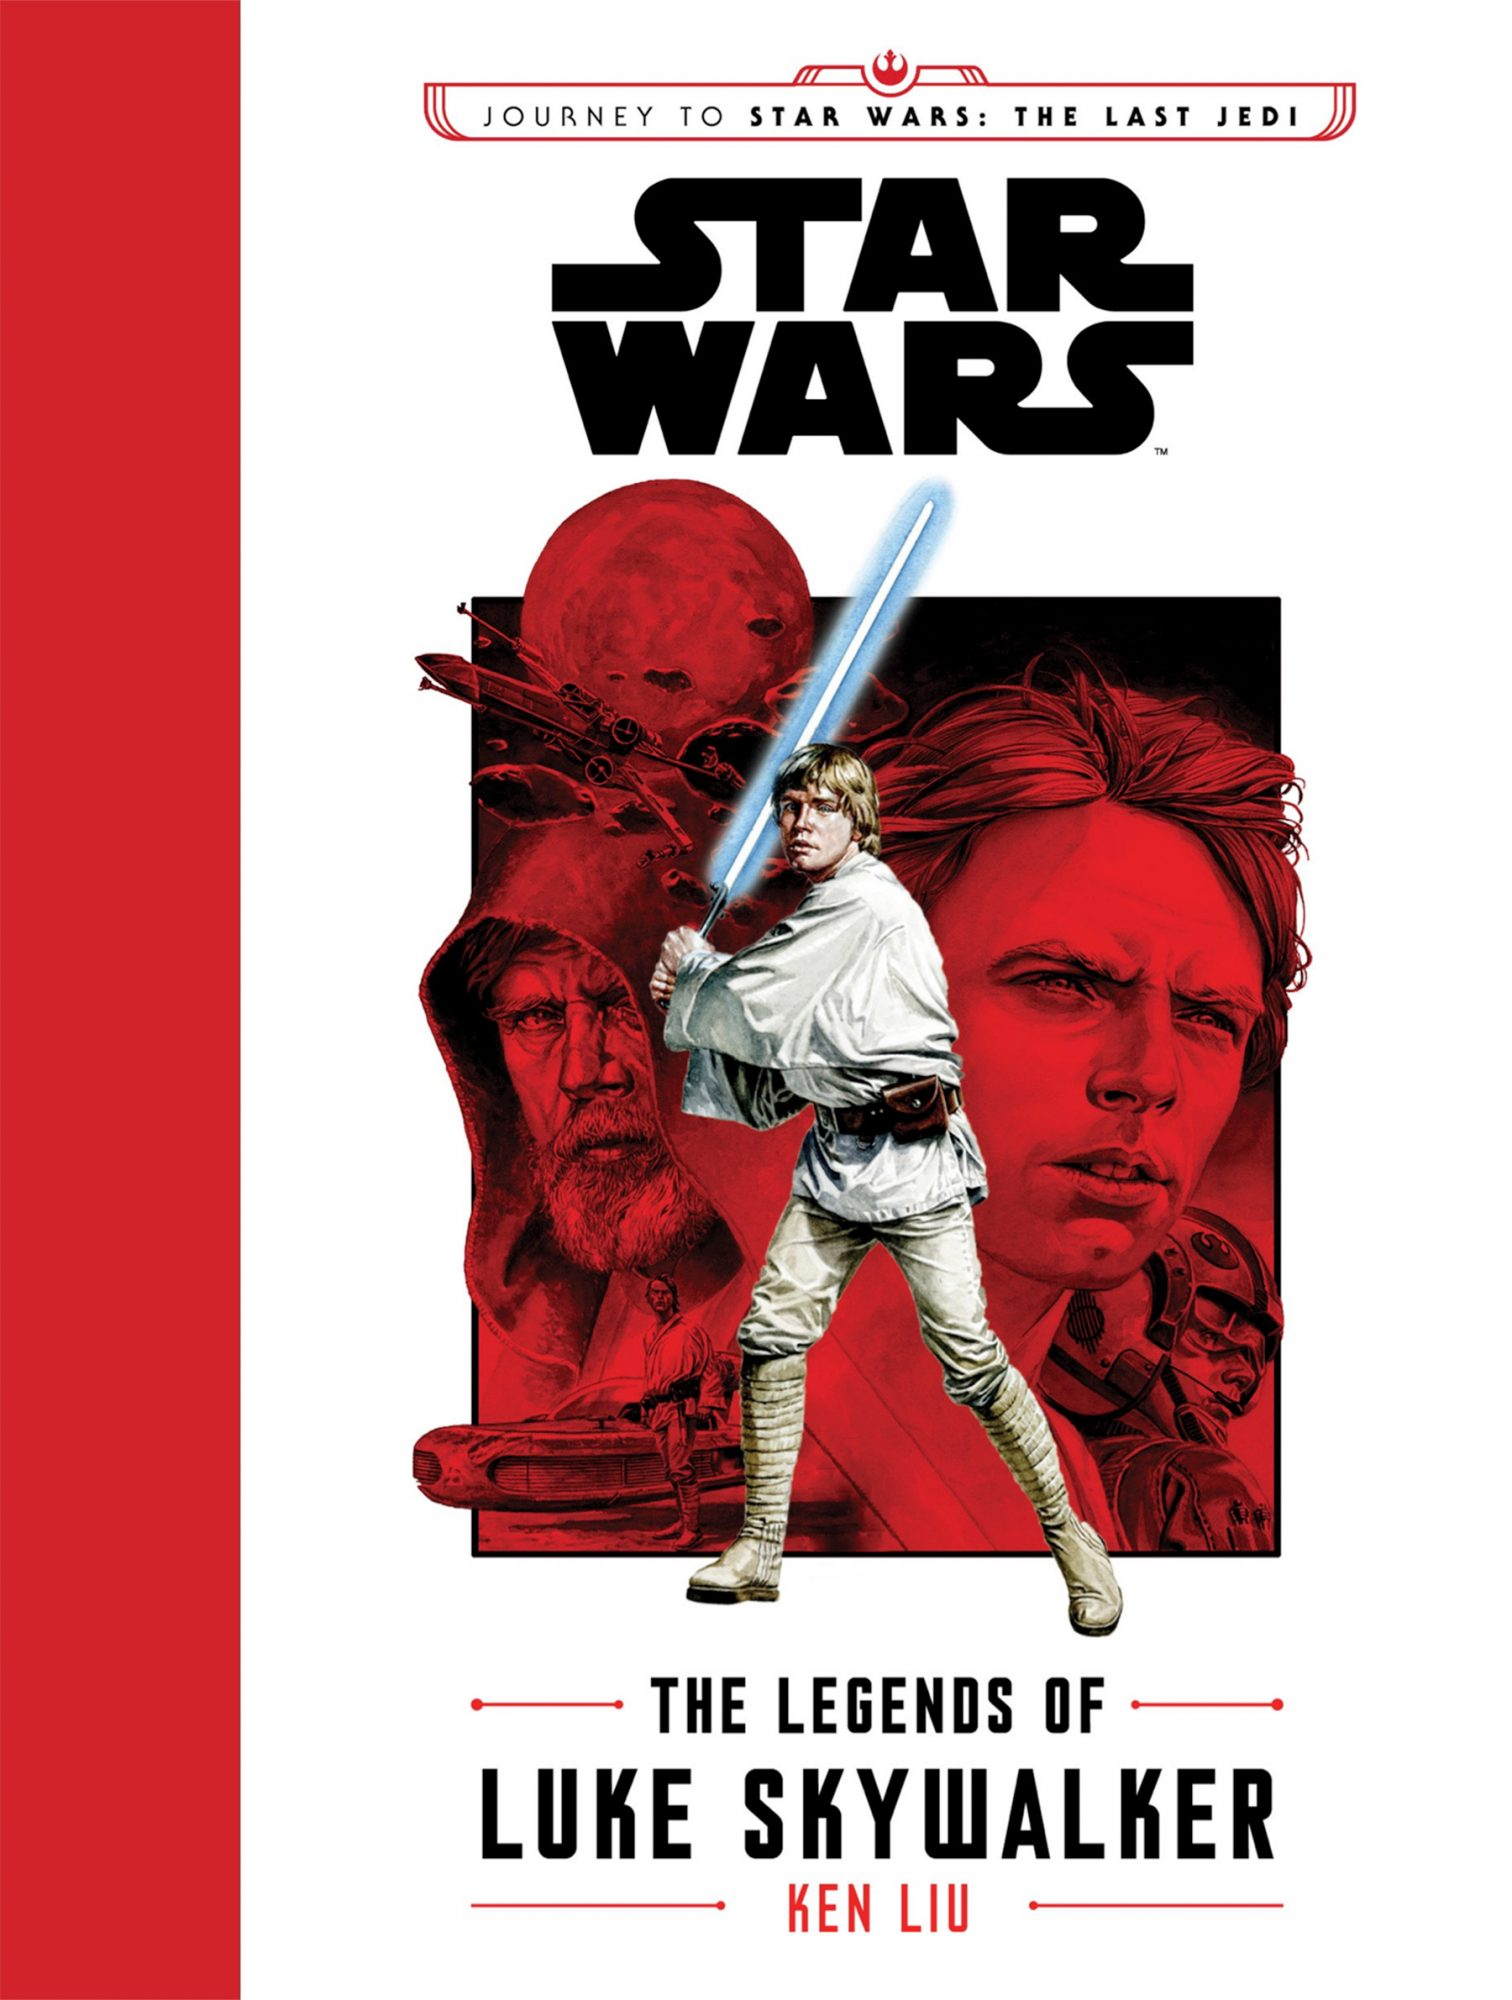 The Legends of Luke Skywalker, by Ken Liu